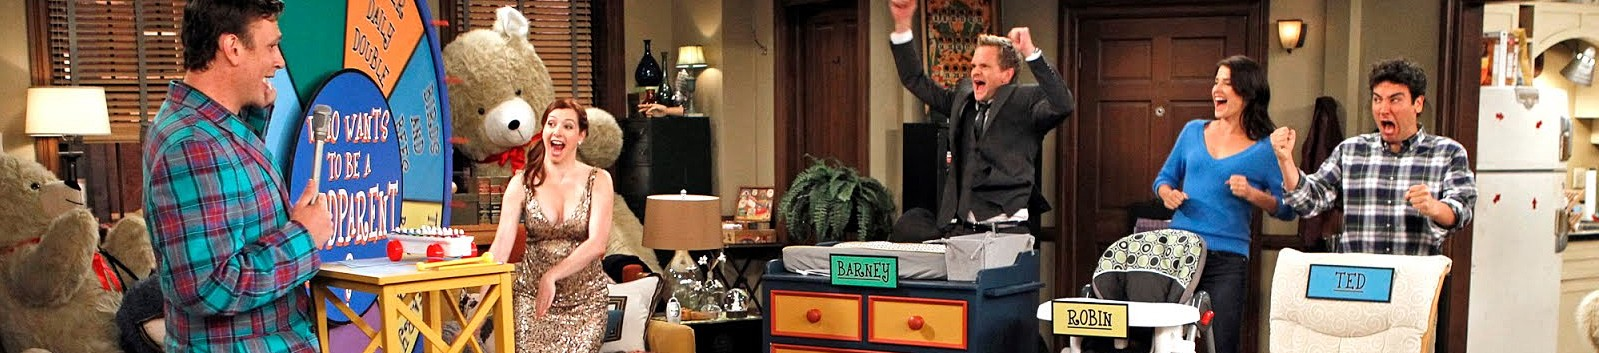 himym-who-wants-to-be-a-godparent-header